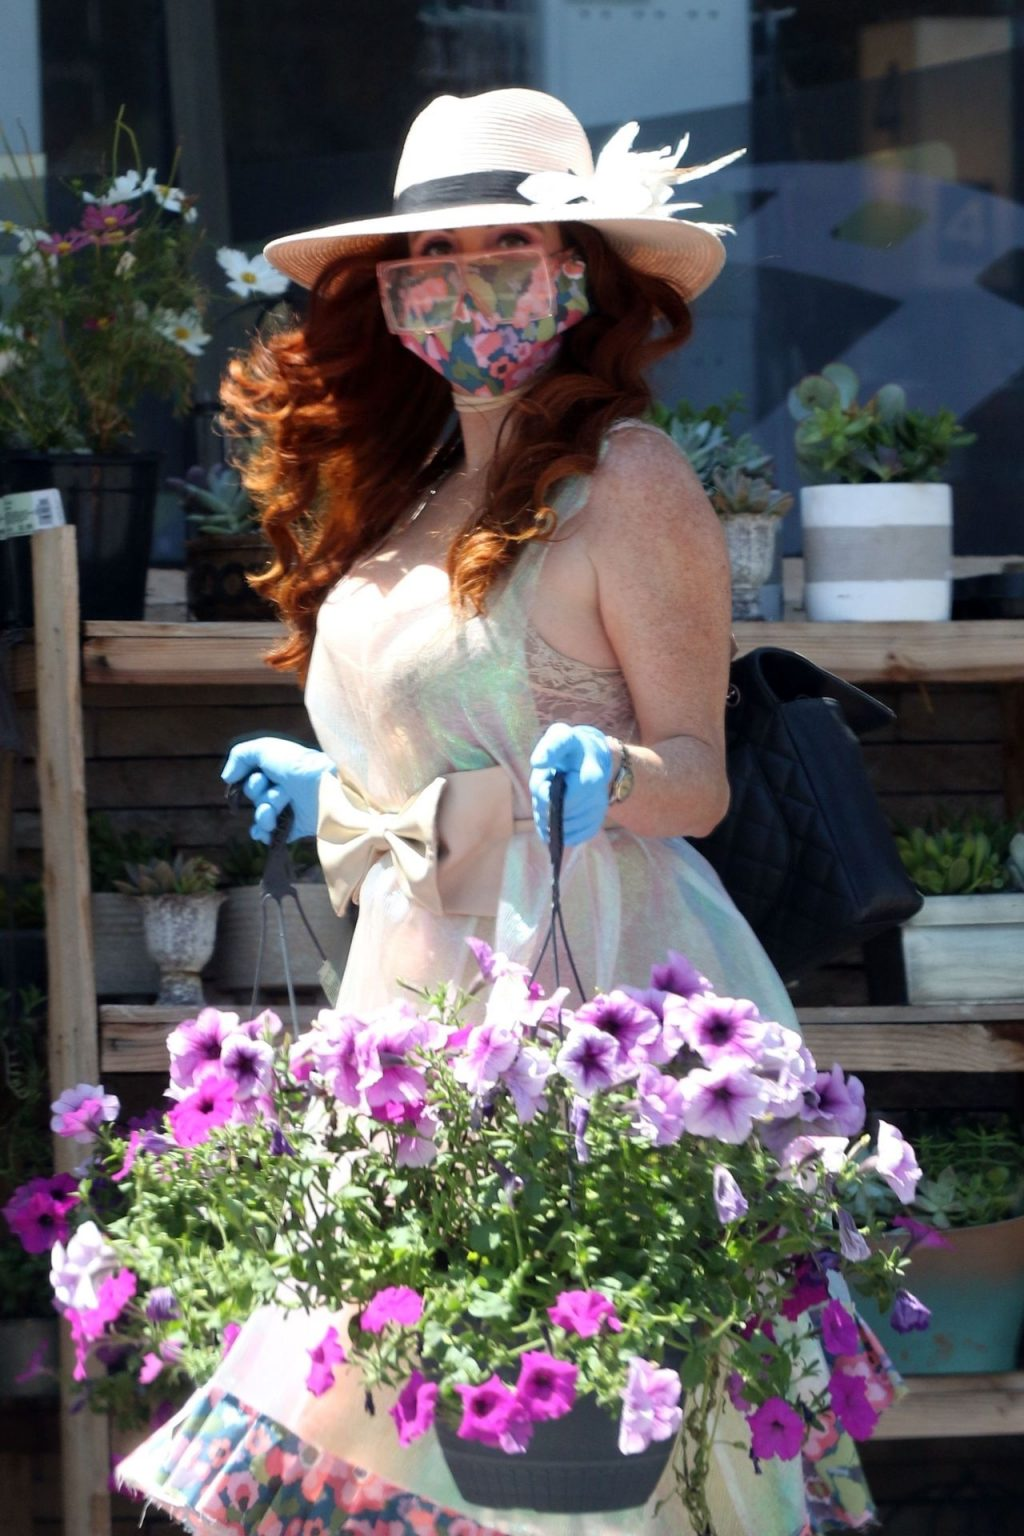 Busty Phoebe Price Stops and Smells the Flowers in LA (40 Photos)